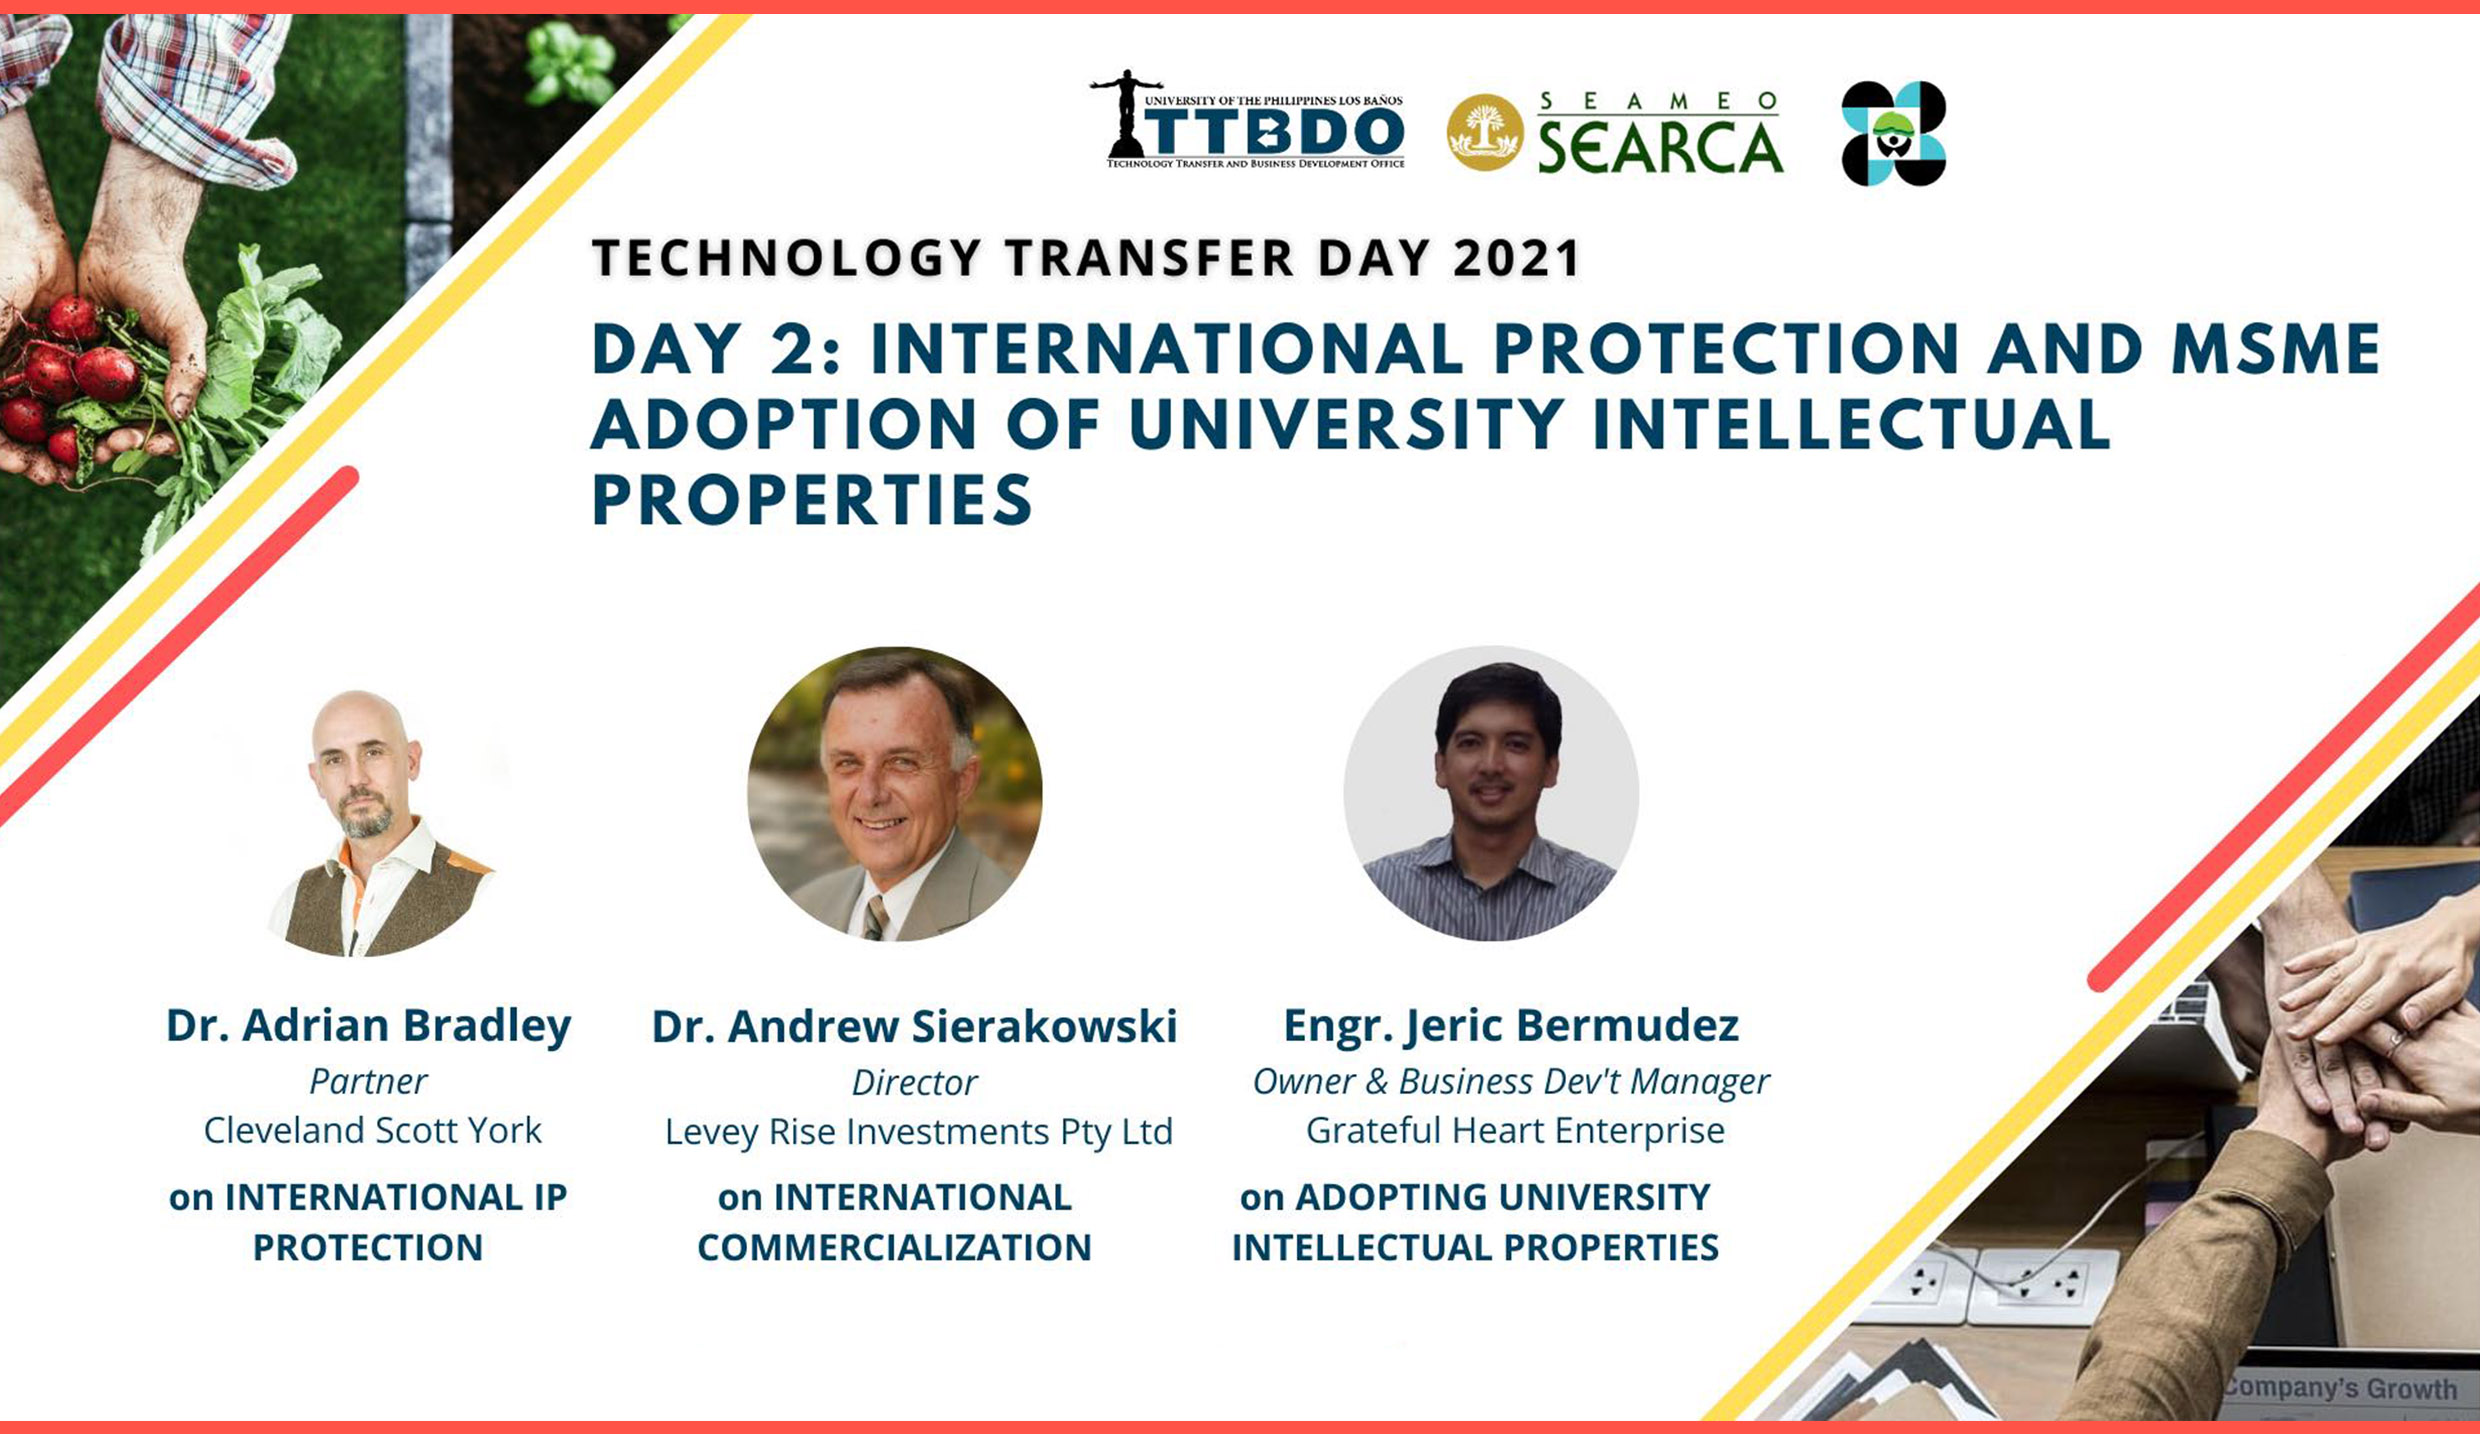 TTBDO highlights protection and adoption of intellectual properties